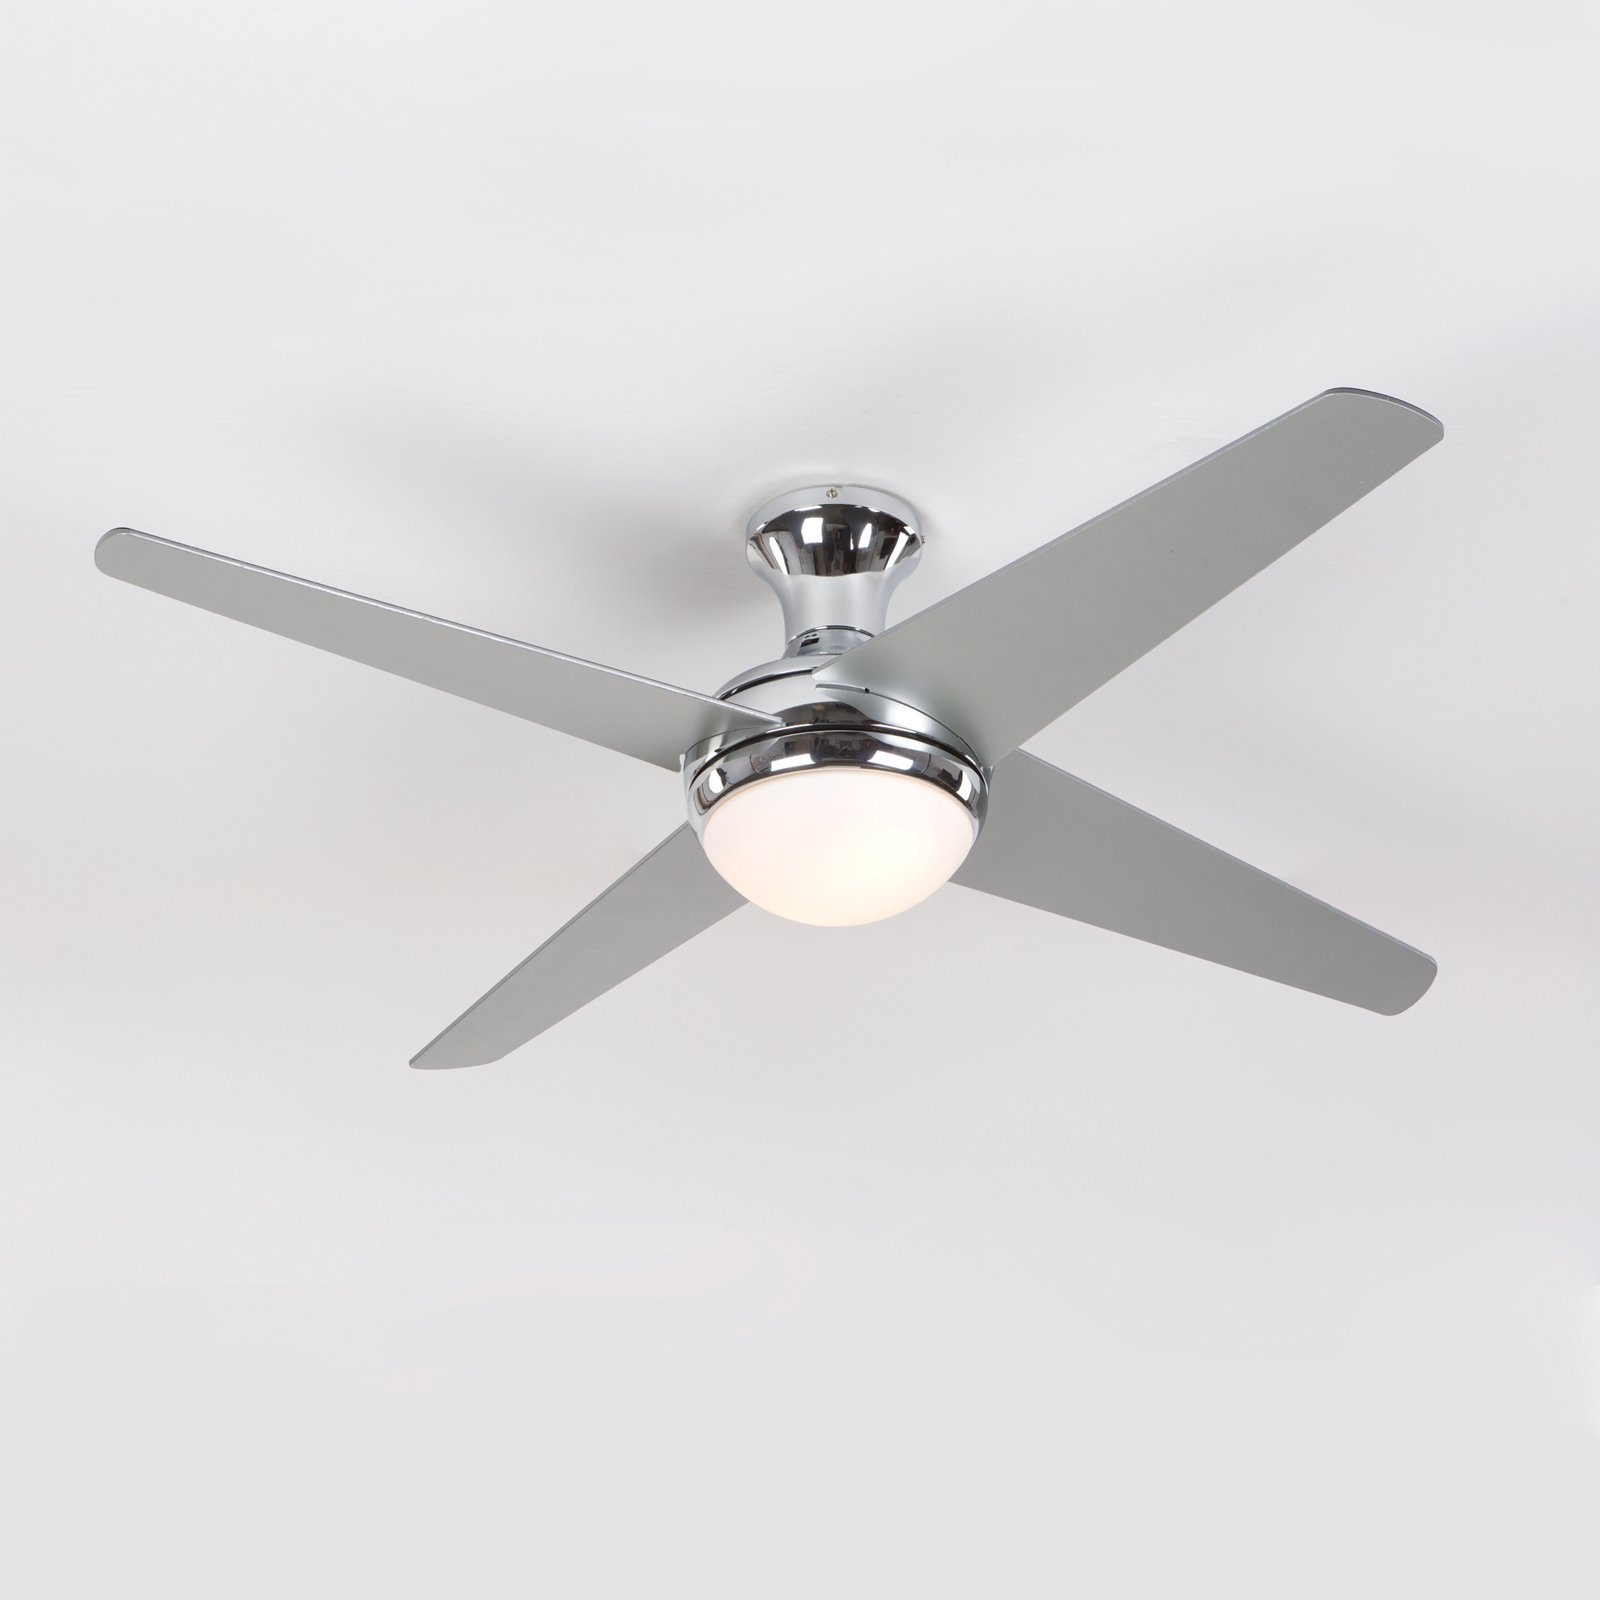 Yosemite Home Decor Taysom 52 in. Indoor Ceiling Fan with ...